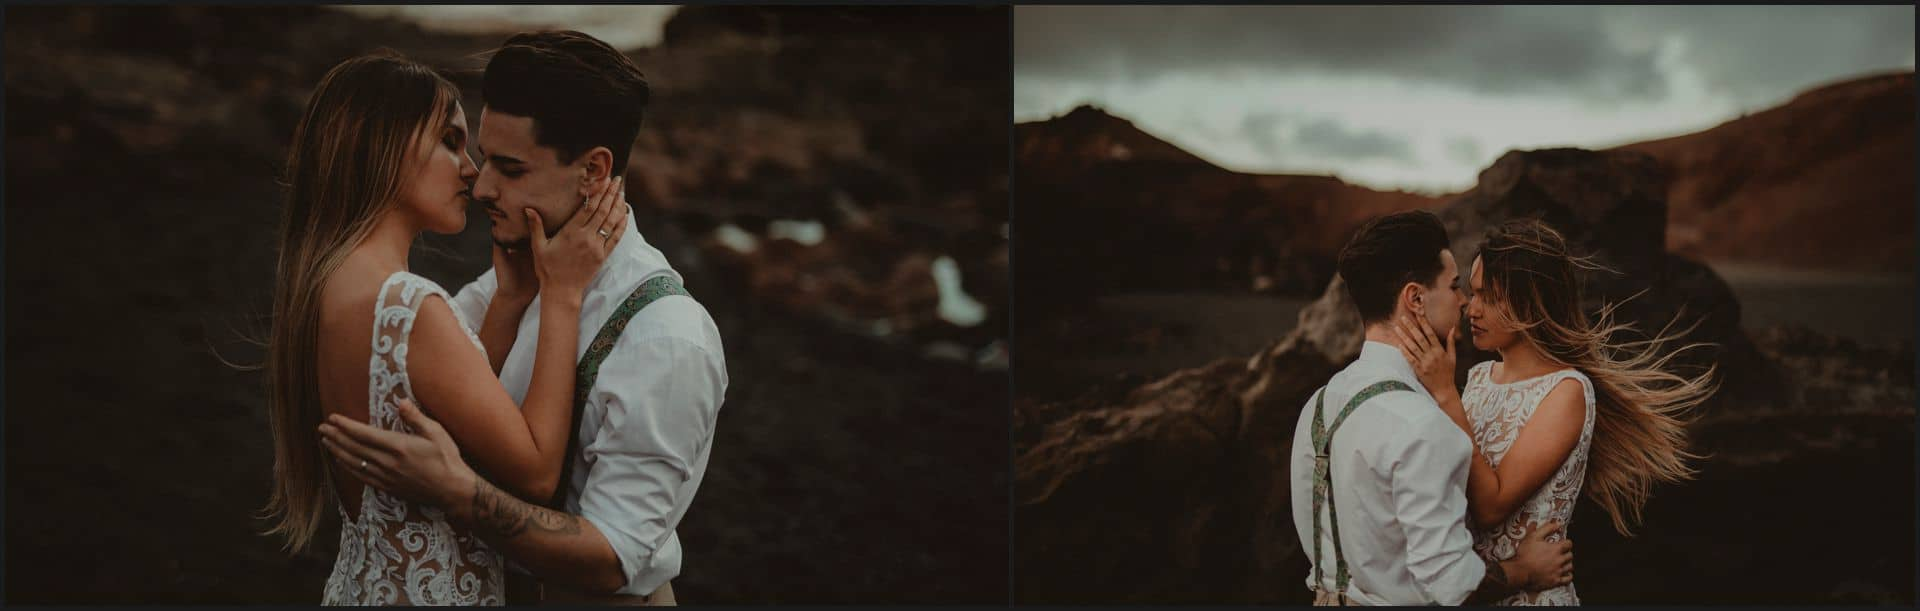 lanzarote, wedding, elopement, bride, groom, adventure wedding, kiss, wind, hair, beach, el golfo